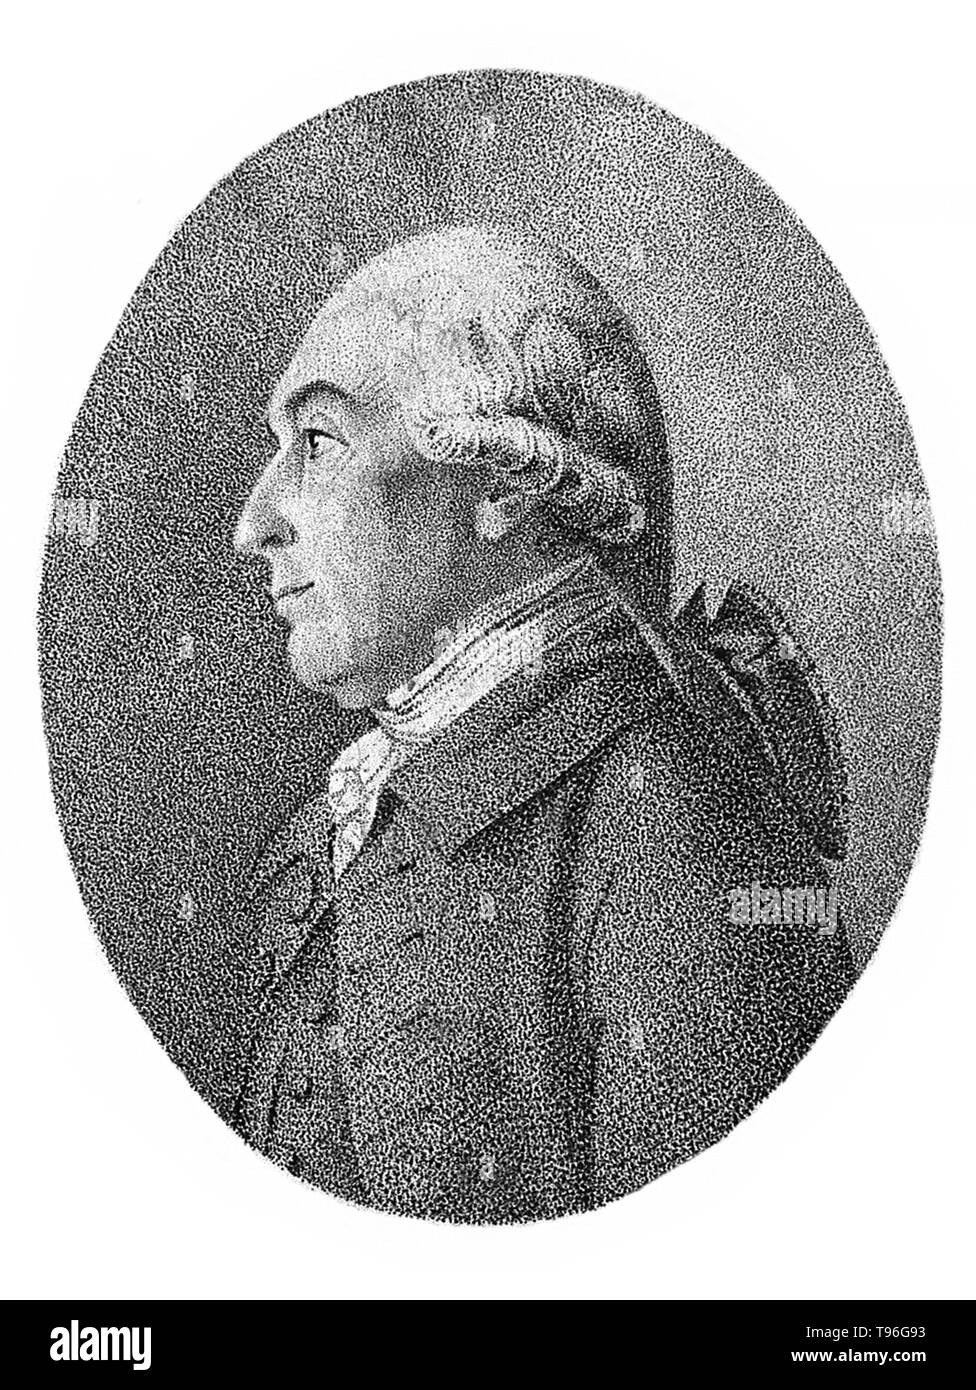 Joseph Black (April 16, 1728 - December 6, 1799) was a Scottish physician and chemist, known for his discoveries of magnesium, latent heat, specific heat, and carbon dioxide. In 1750, while still a student, Black developed the analytical balance based on a light-weight beam balanced on a wedge-shaped fulcrum. Each arm carried a pan on which the sample or standard weights was placed. It far exceeded the accuracy of any other balance of the time and became an important scientific instrument in most chemistry laboratories. He was Professor of Anatomy and Chemistry at the University of Glasgow for - Stock Image